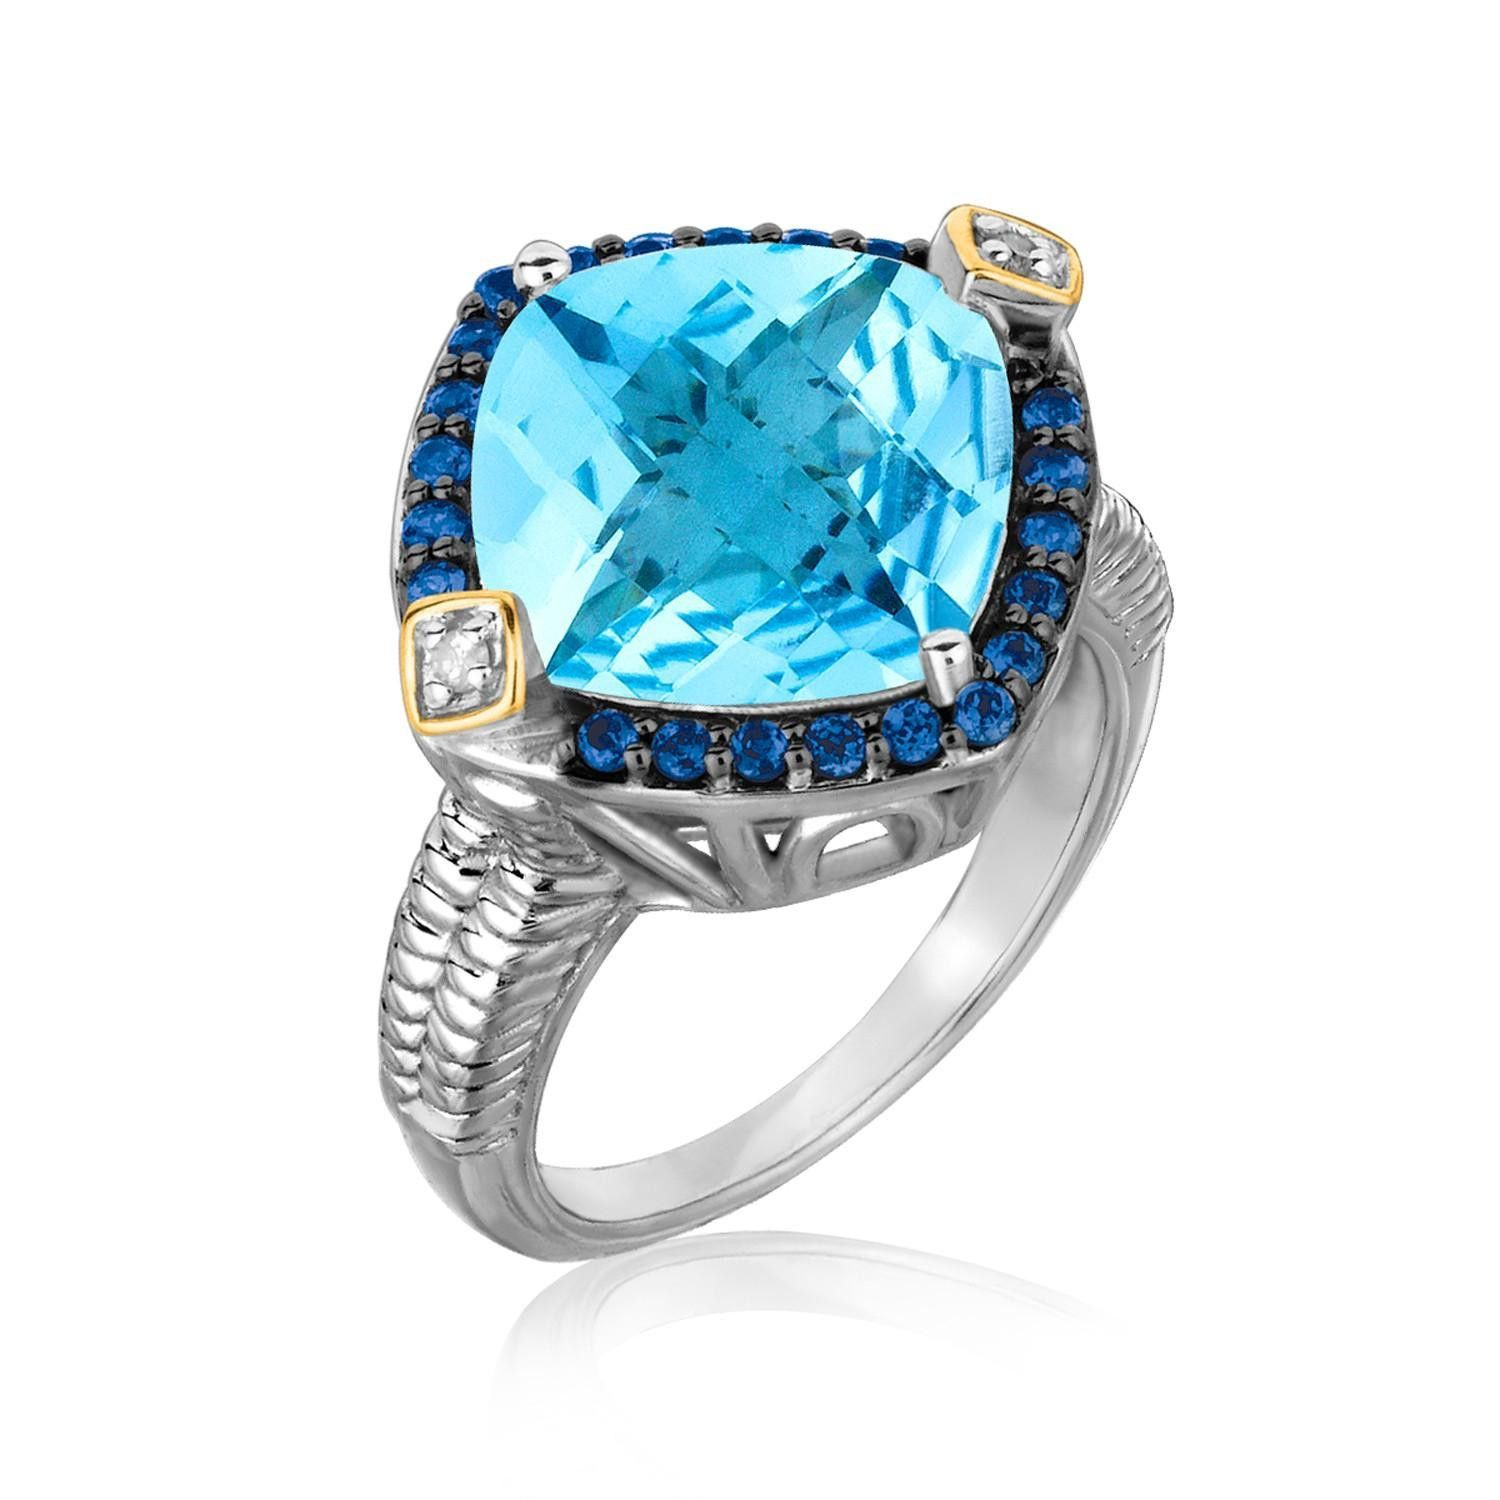 18K Yellow Gold and Sterling Silver Cushion Blue Topaz, Iolite, and Diamond Ring